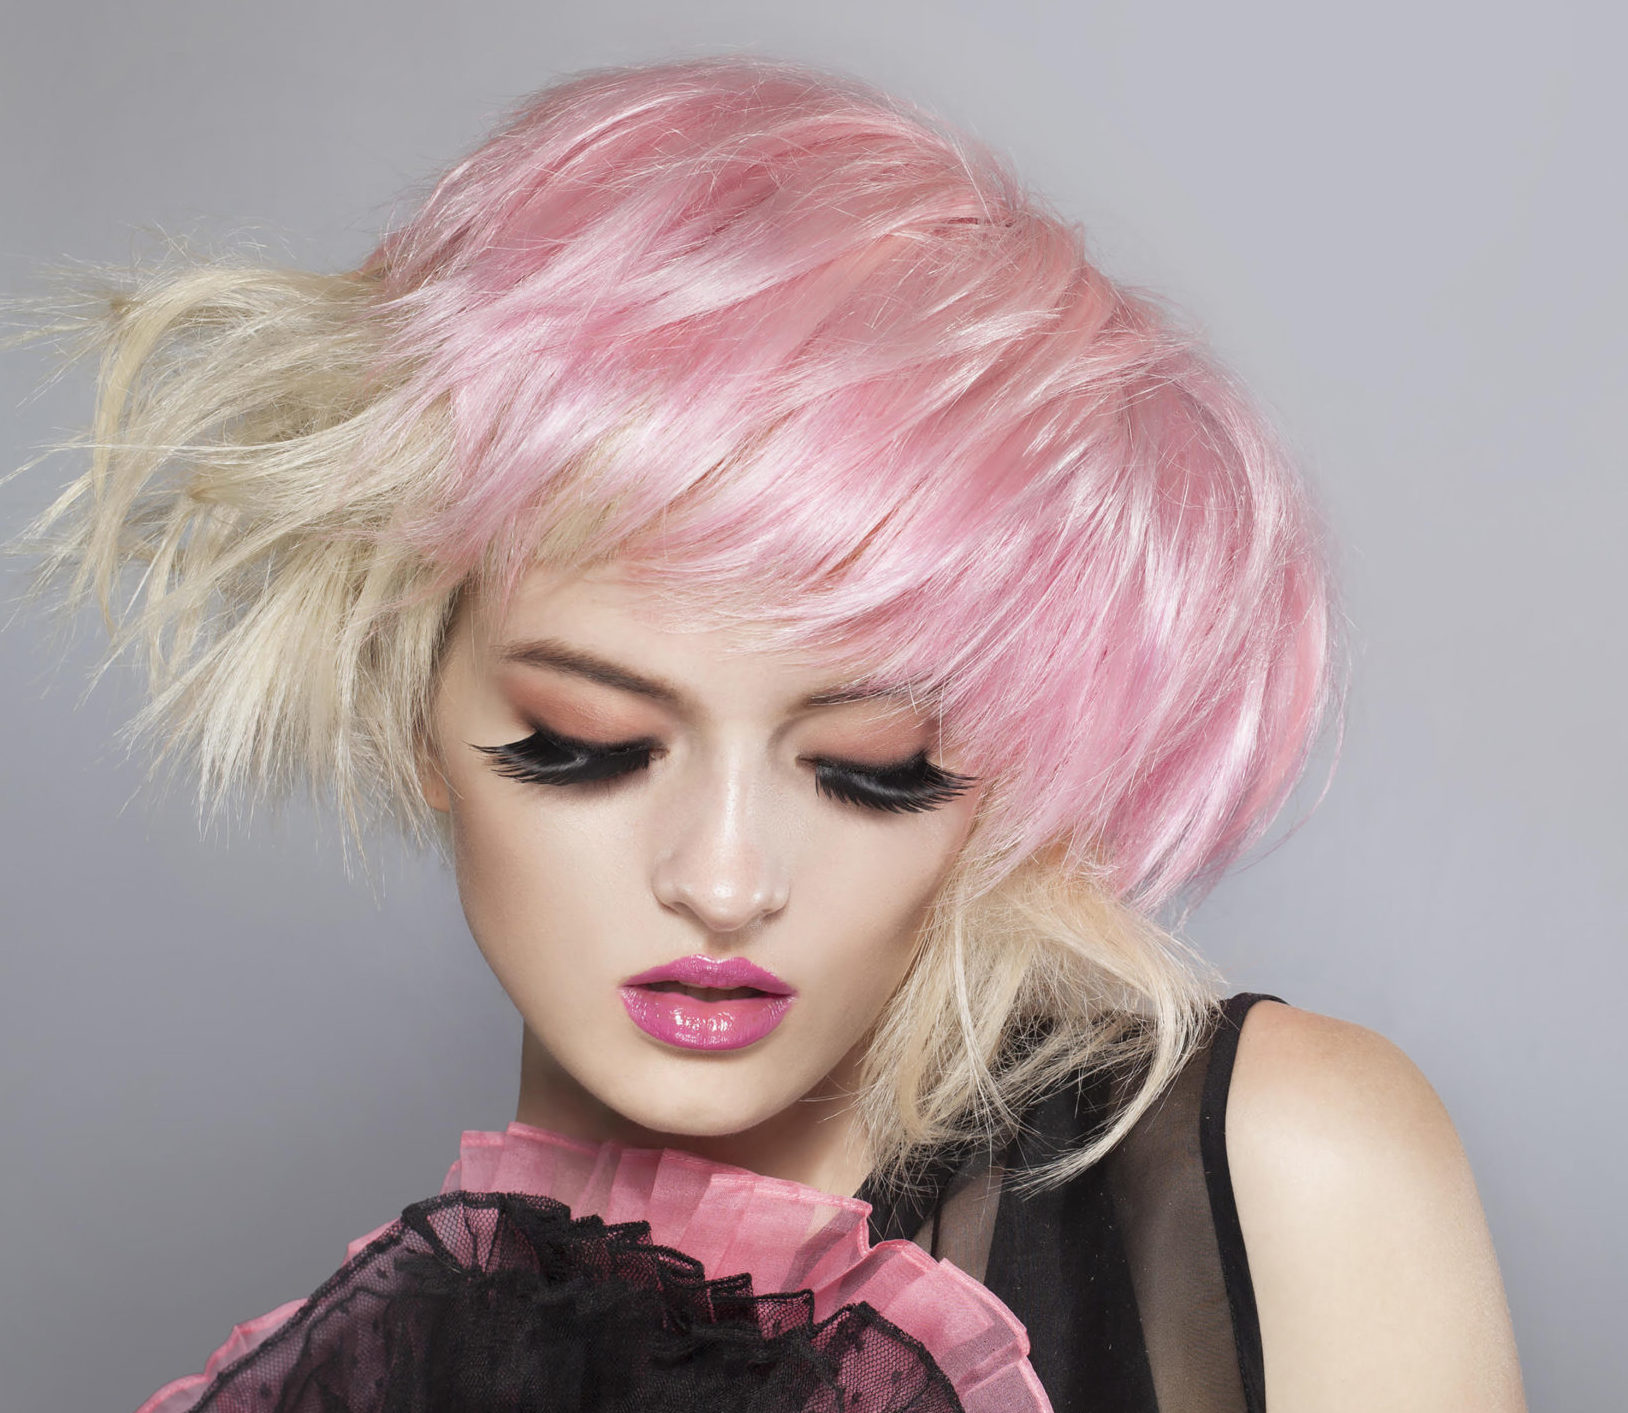 Pink hairstyle from Hiya David Kafer Cutting Studio